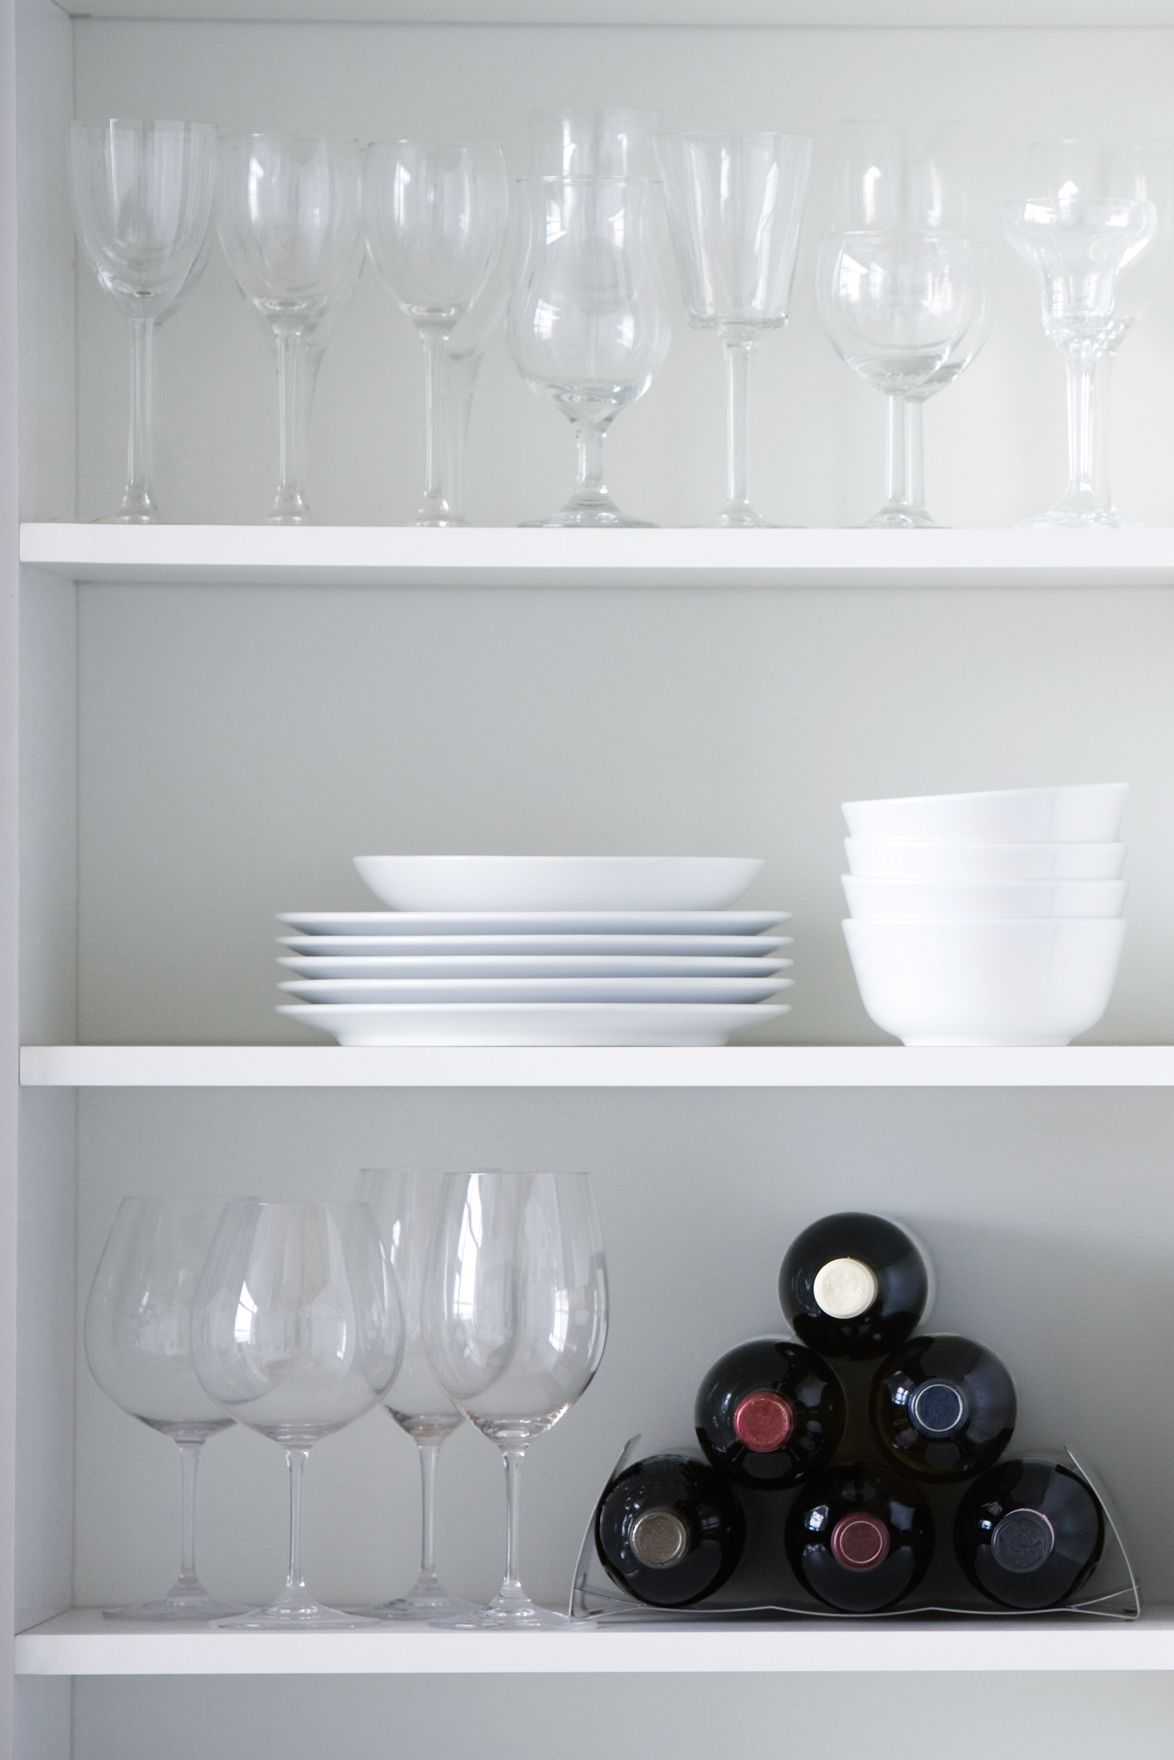 Kitchen cupboard, interior design in white color